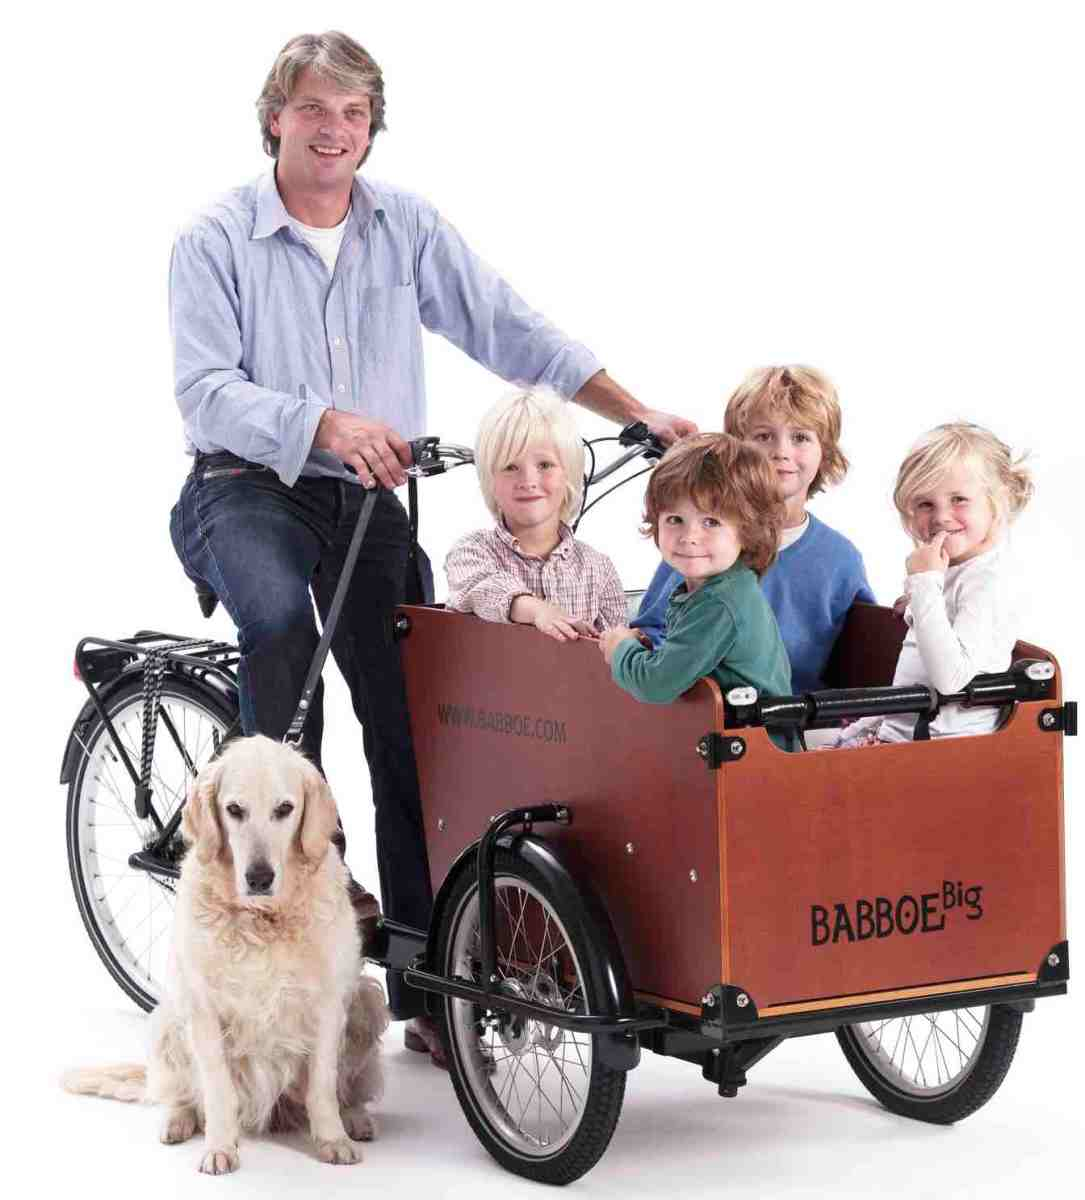 Cargo Bike for sale - Babboe Big